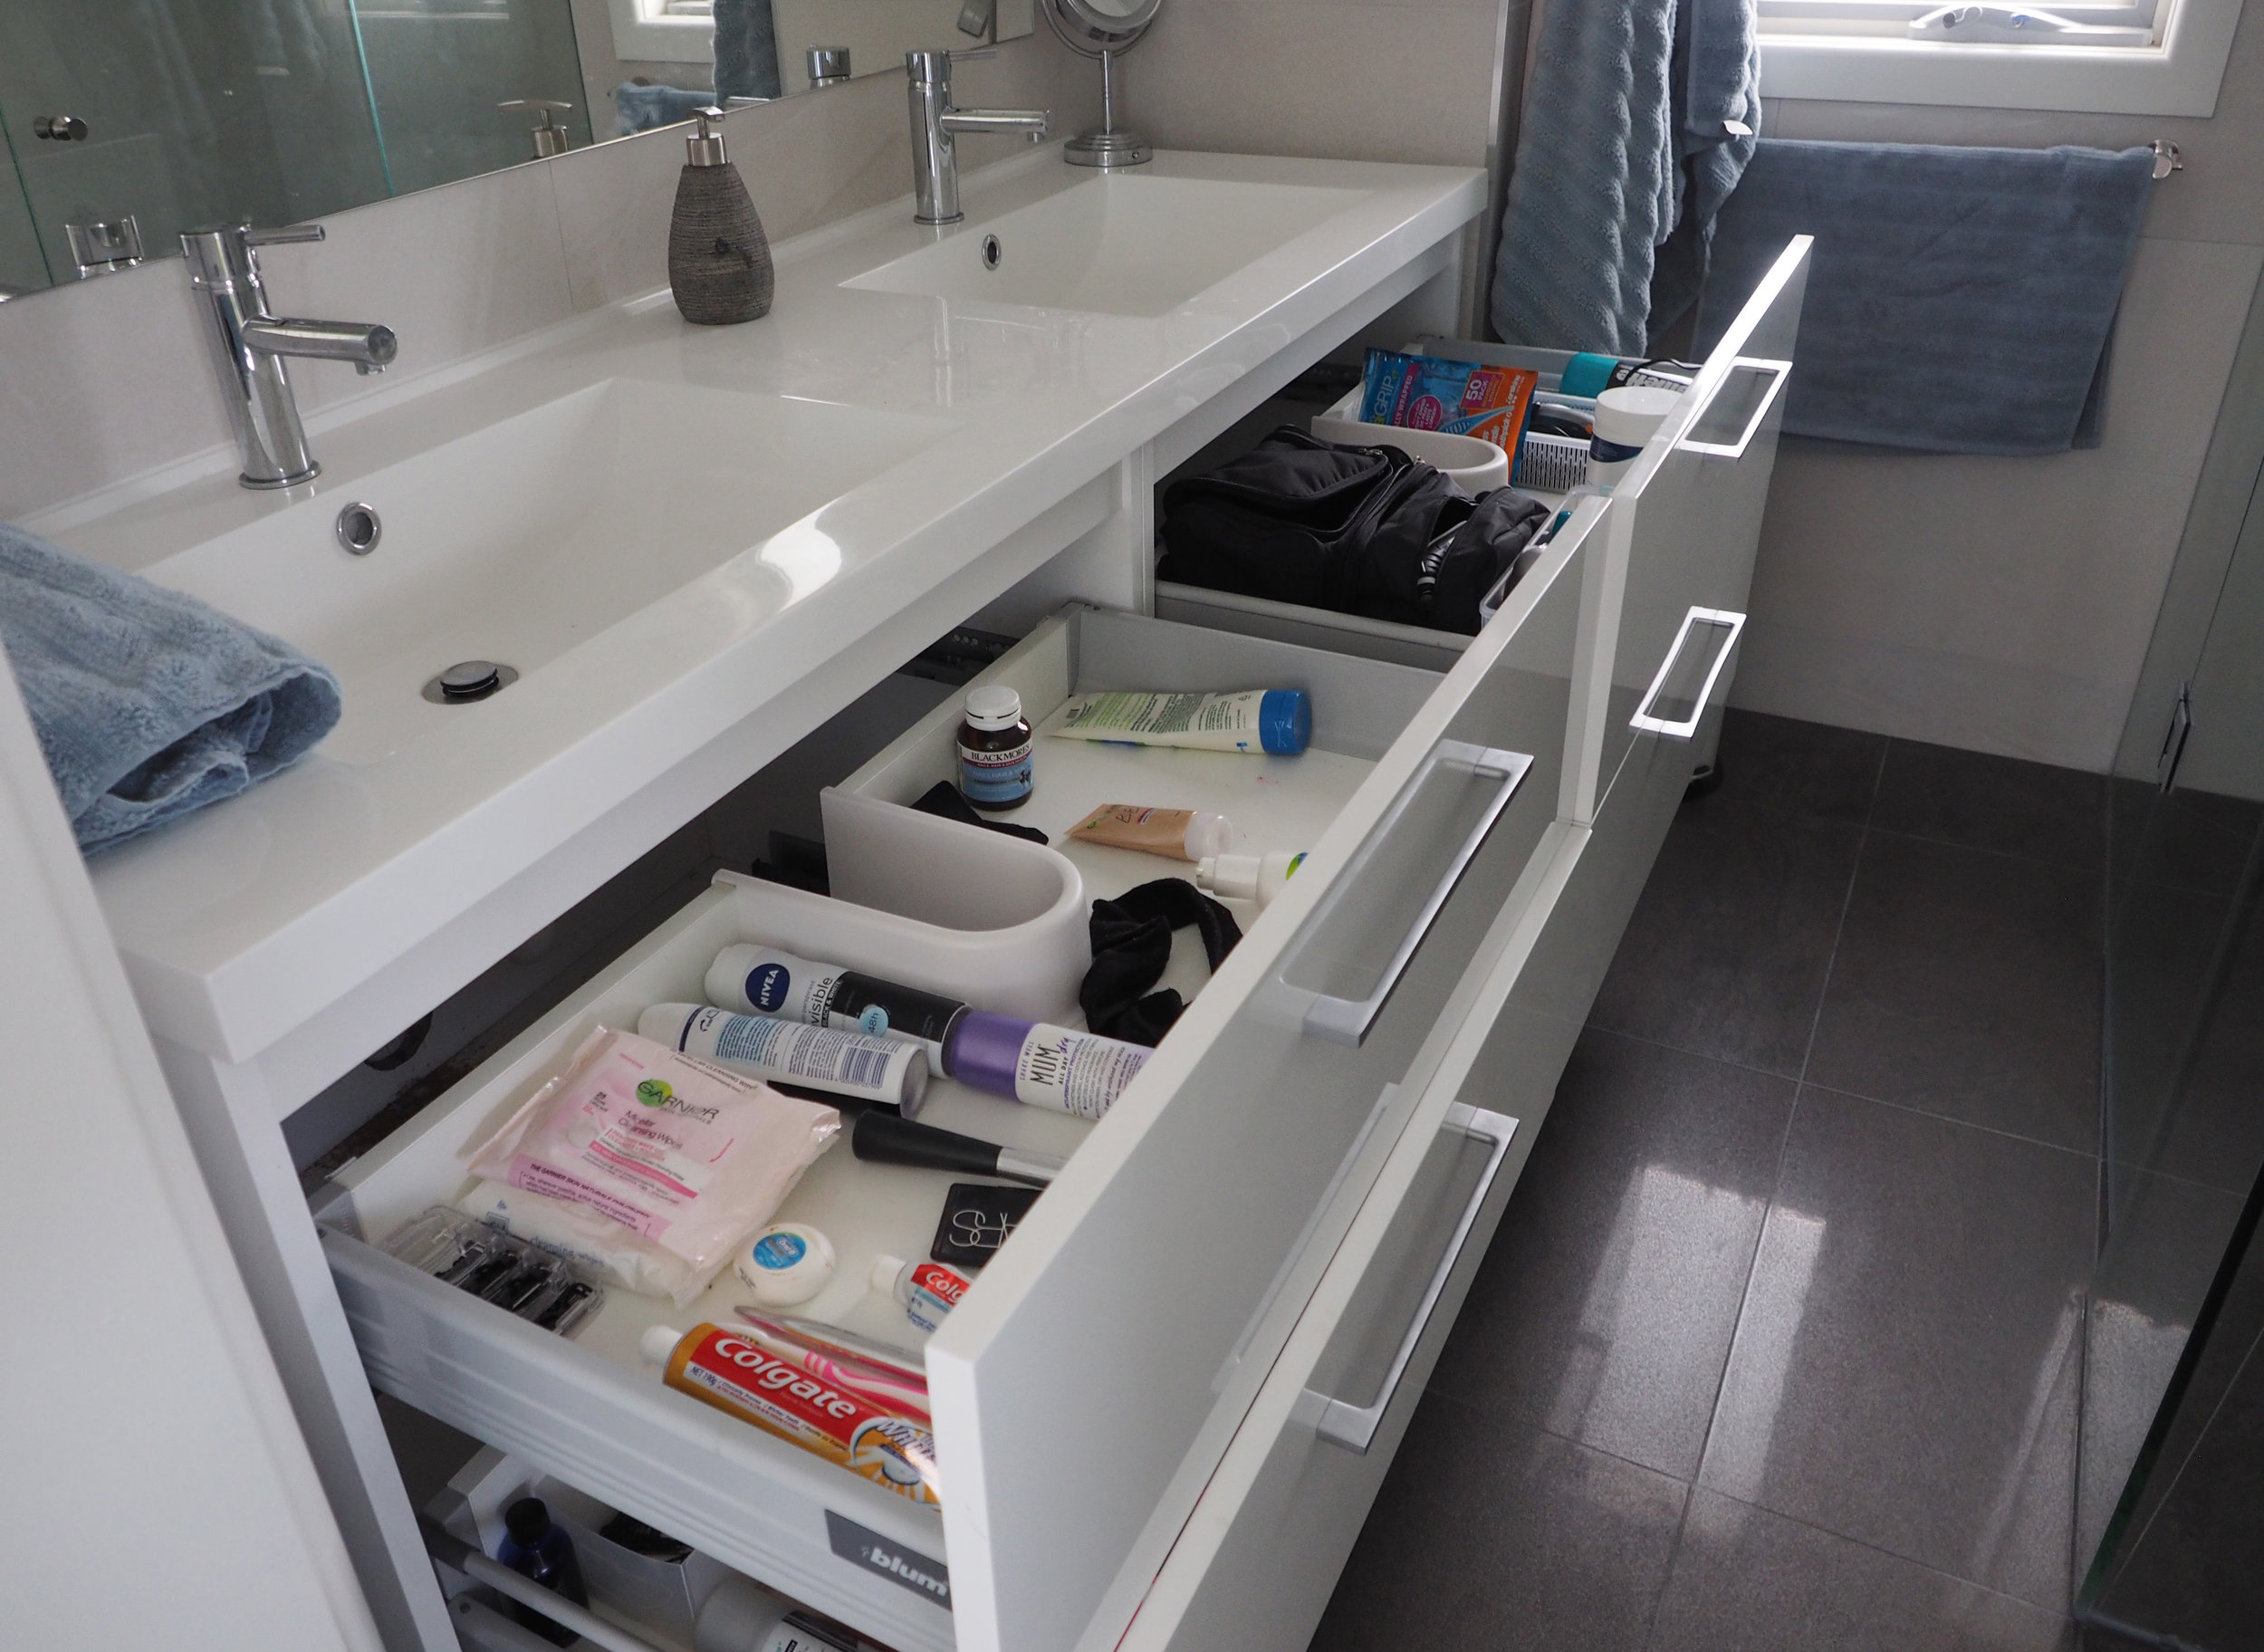 The Best Way To Organise A Bathroom Vanity In 15 Minutes Or Less Blog Home Organisation The Organised You